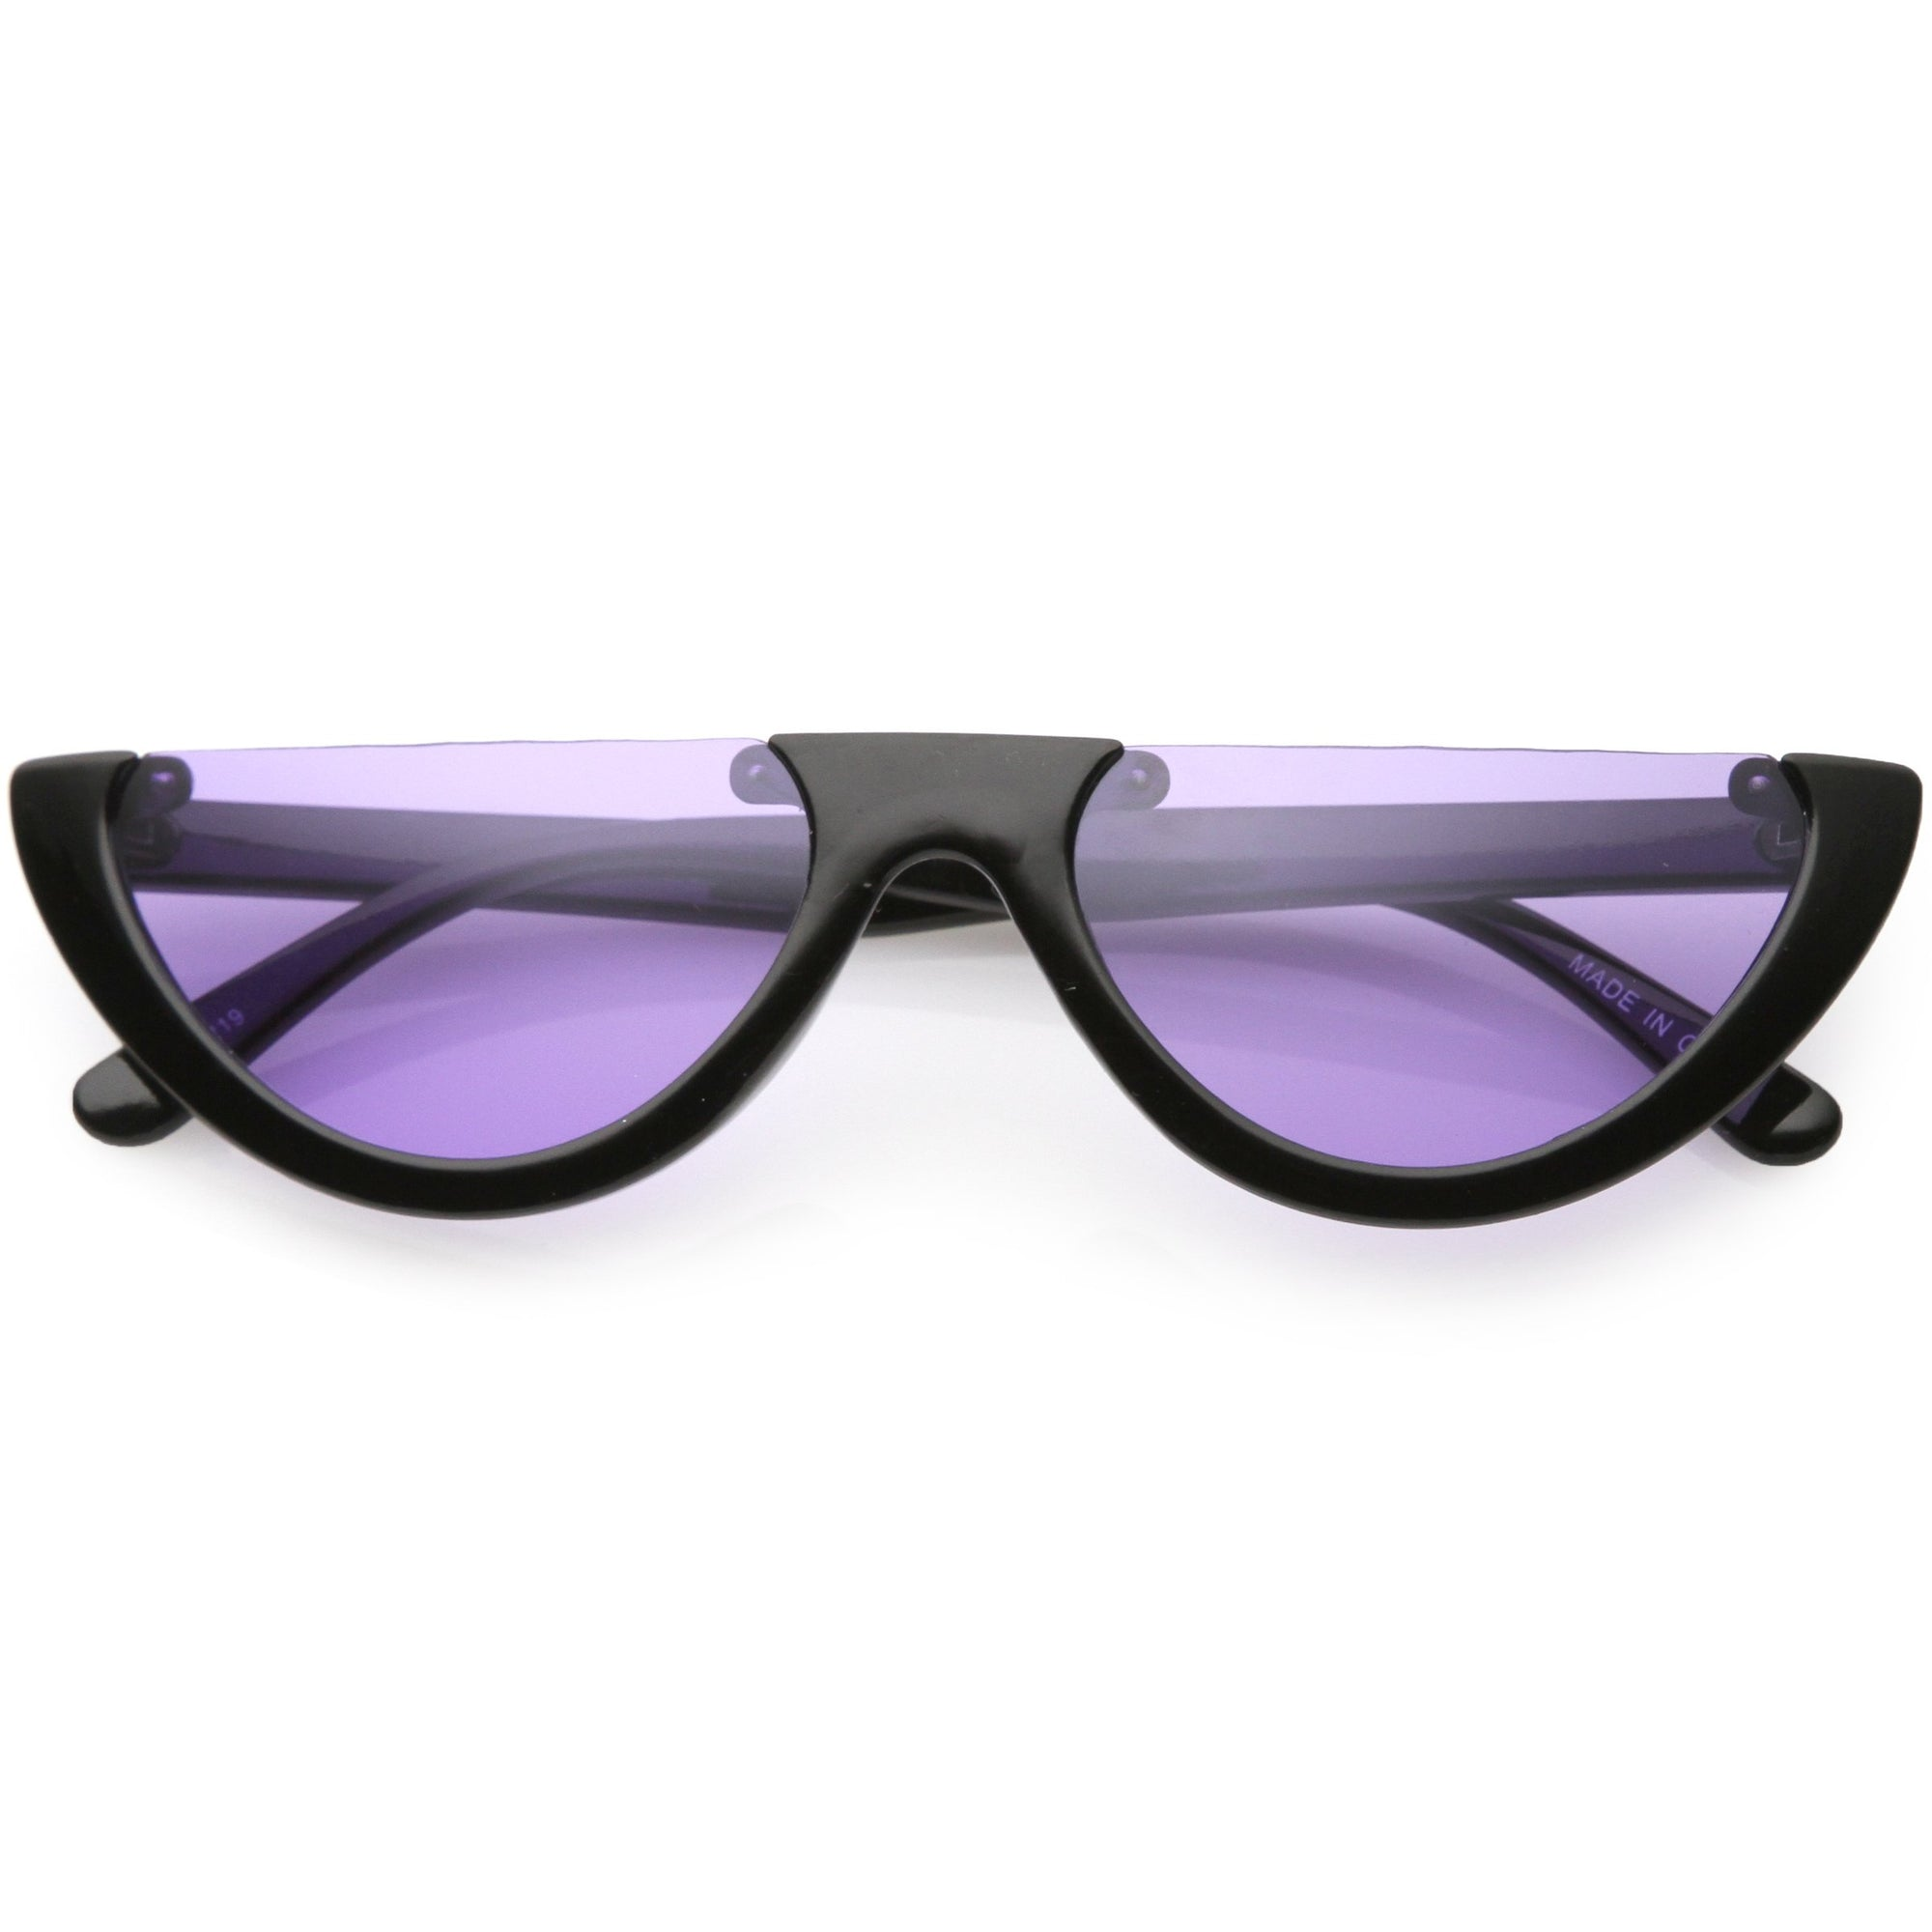 79af07e142 ... Women s Retro Color Tone Half Frame Flat Cut Sunglasses C685 · Black  Purple